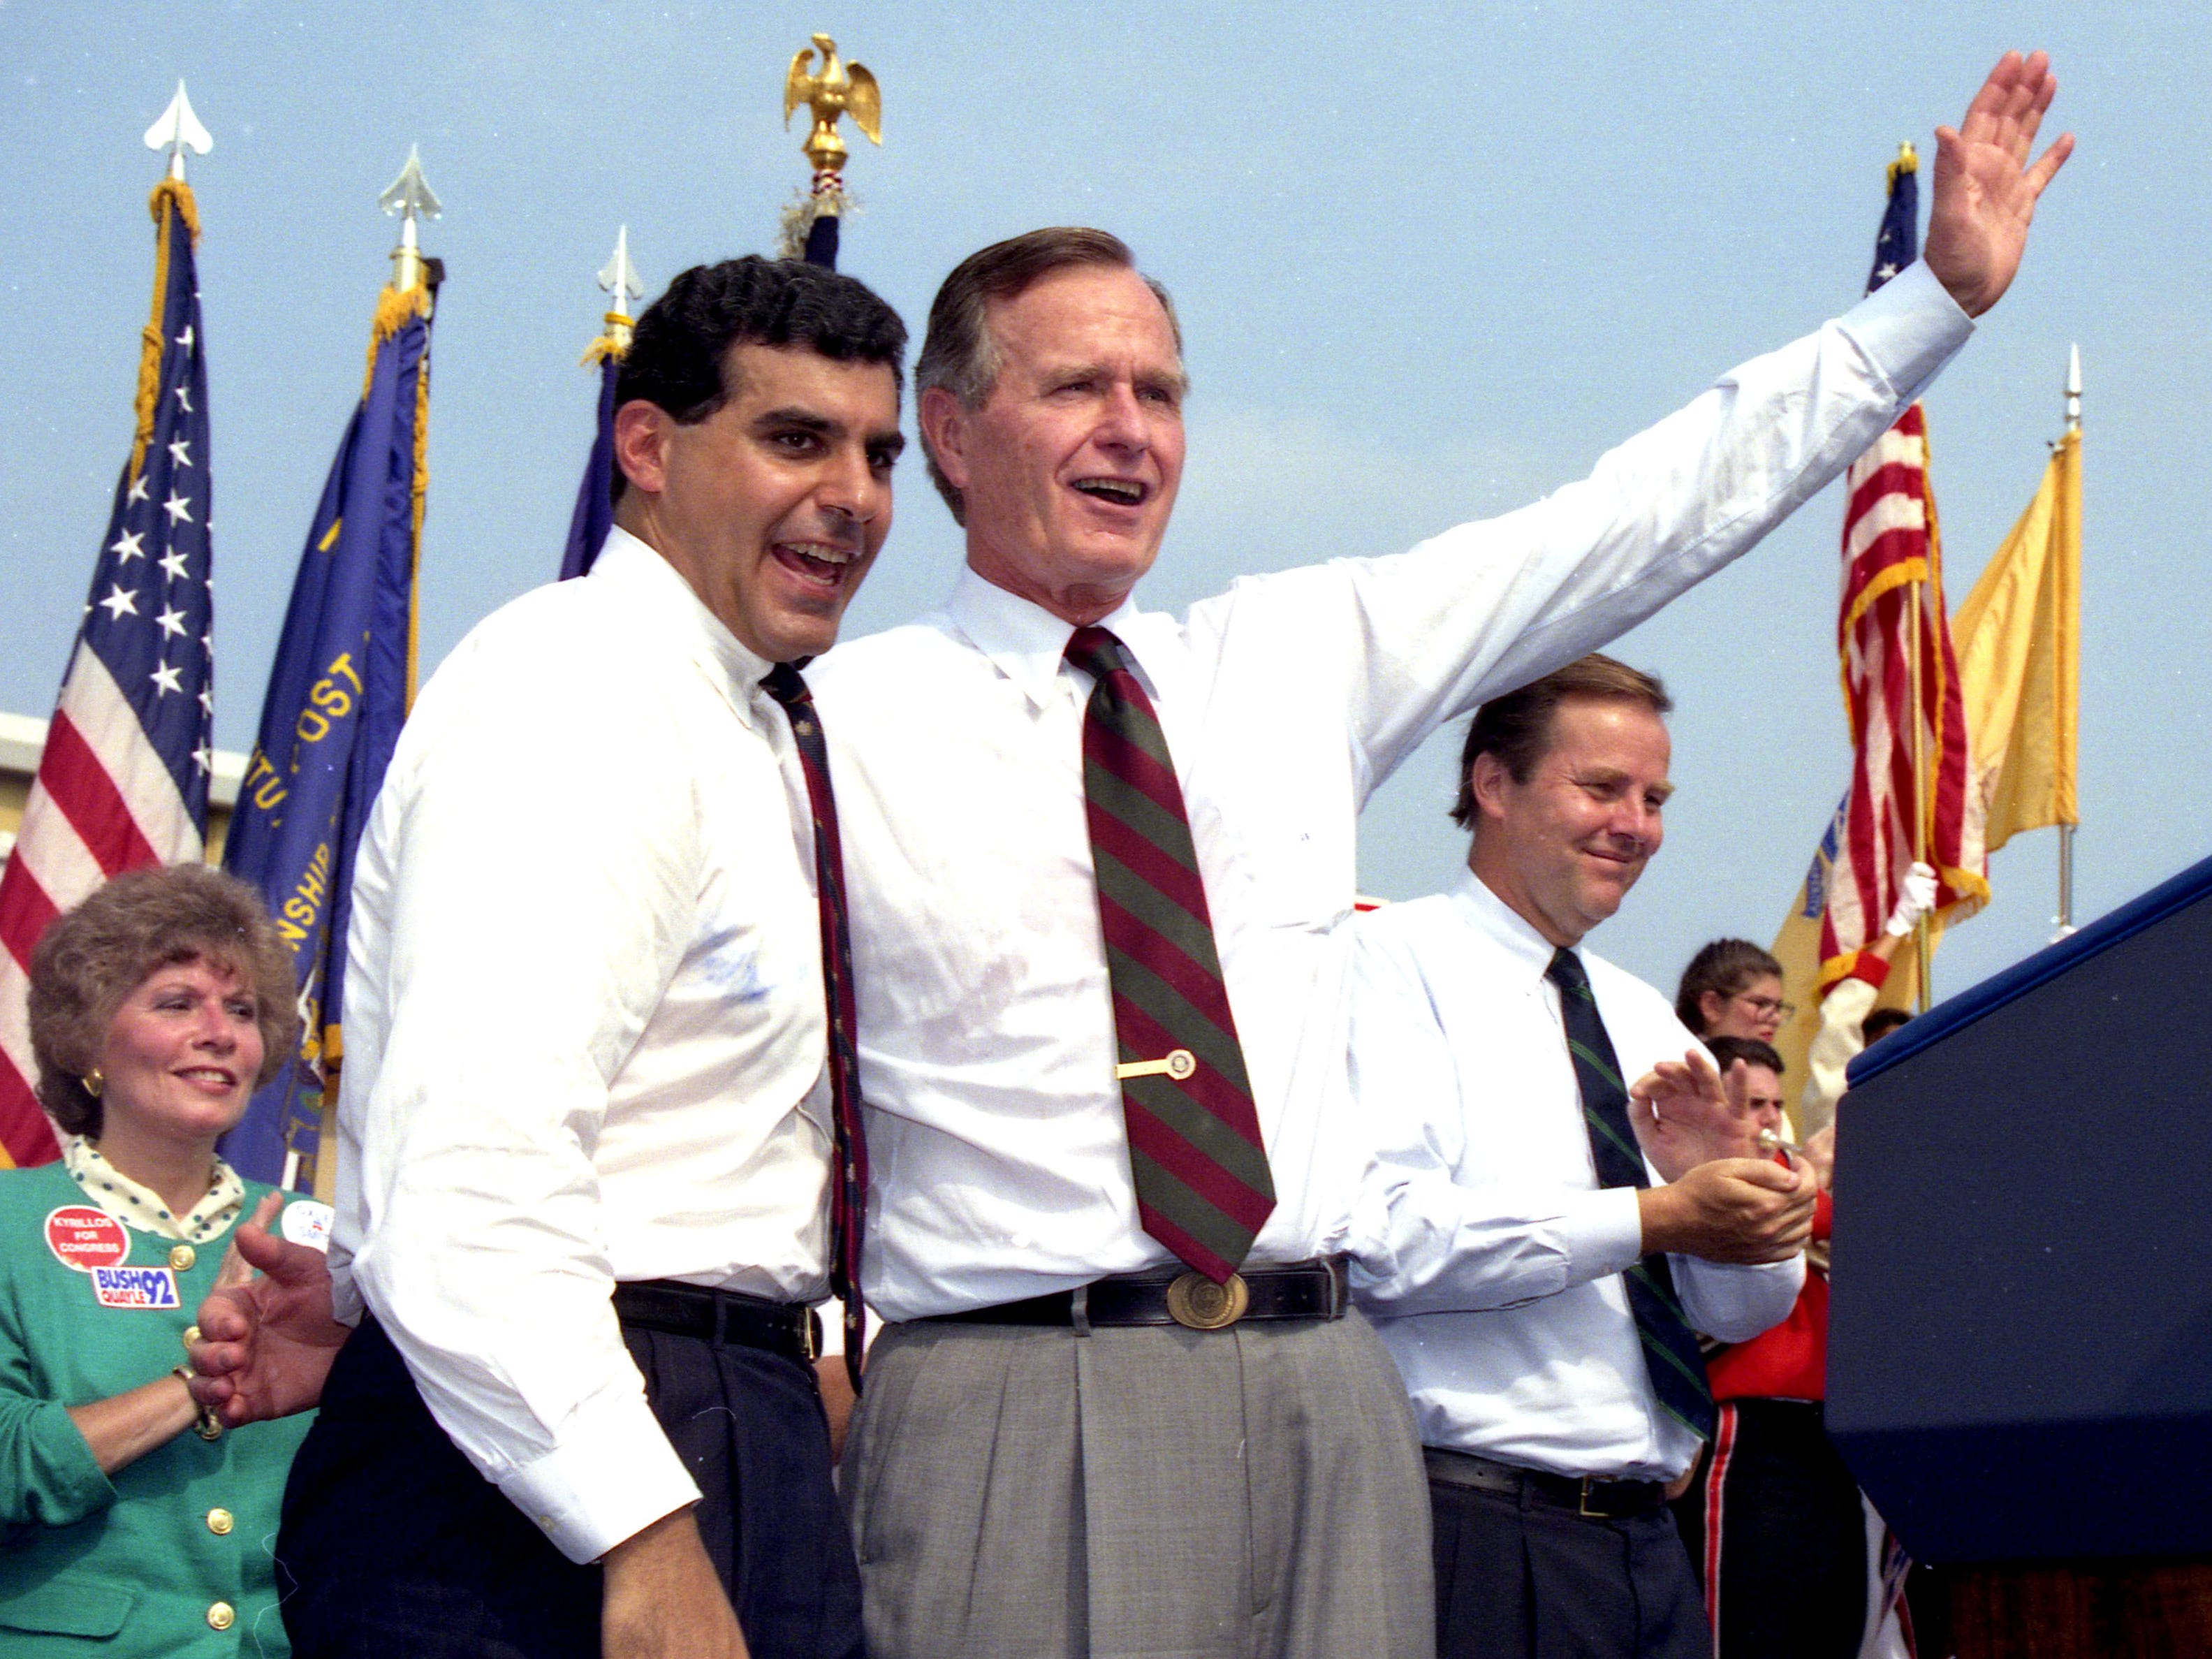 President George Bush waves to the crowd with then-Assemblyman Joseph Kyrillos after speaking at the V.F.W. Post 2179 in Middletown, NJ, on September 9, 1992.